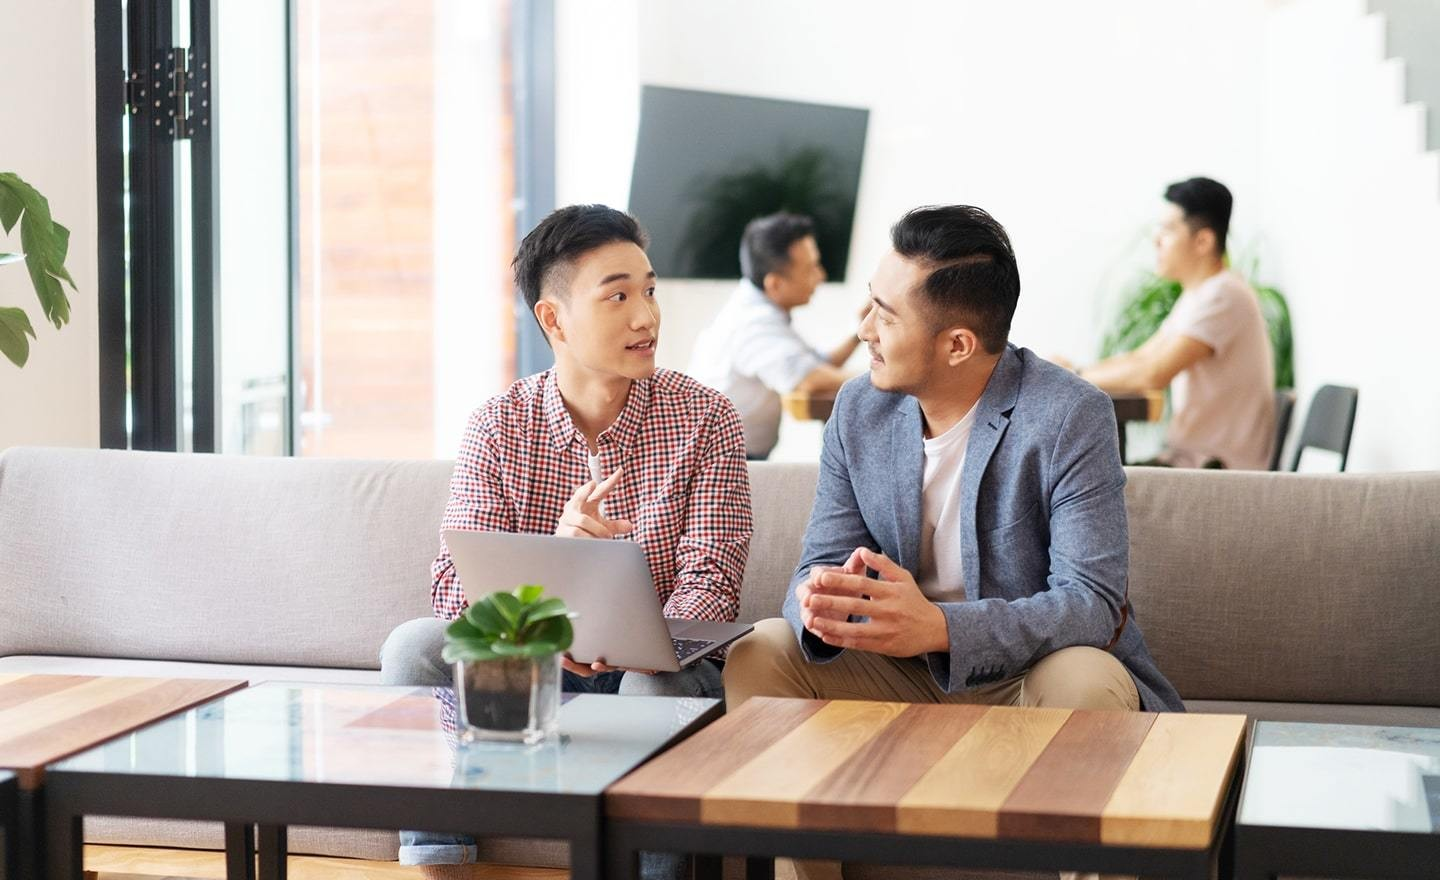 Two Asian men sitting at a table